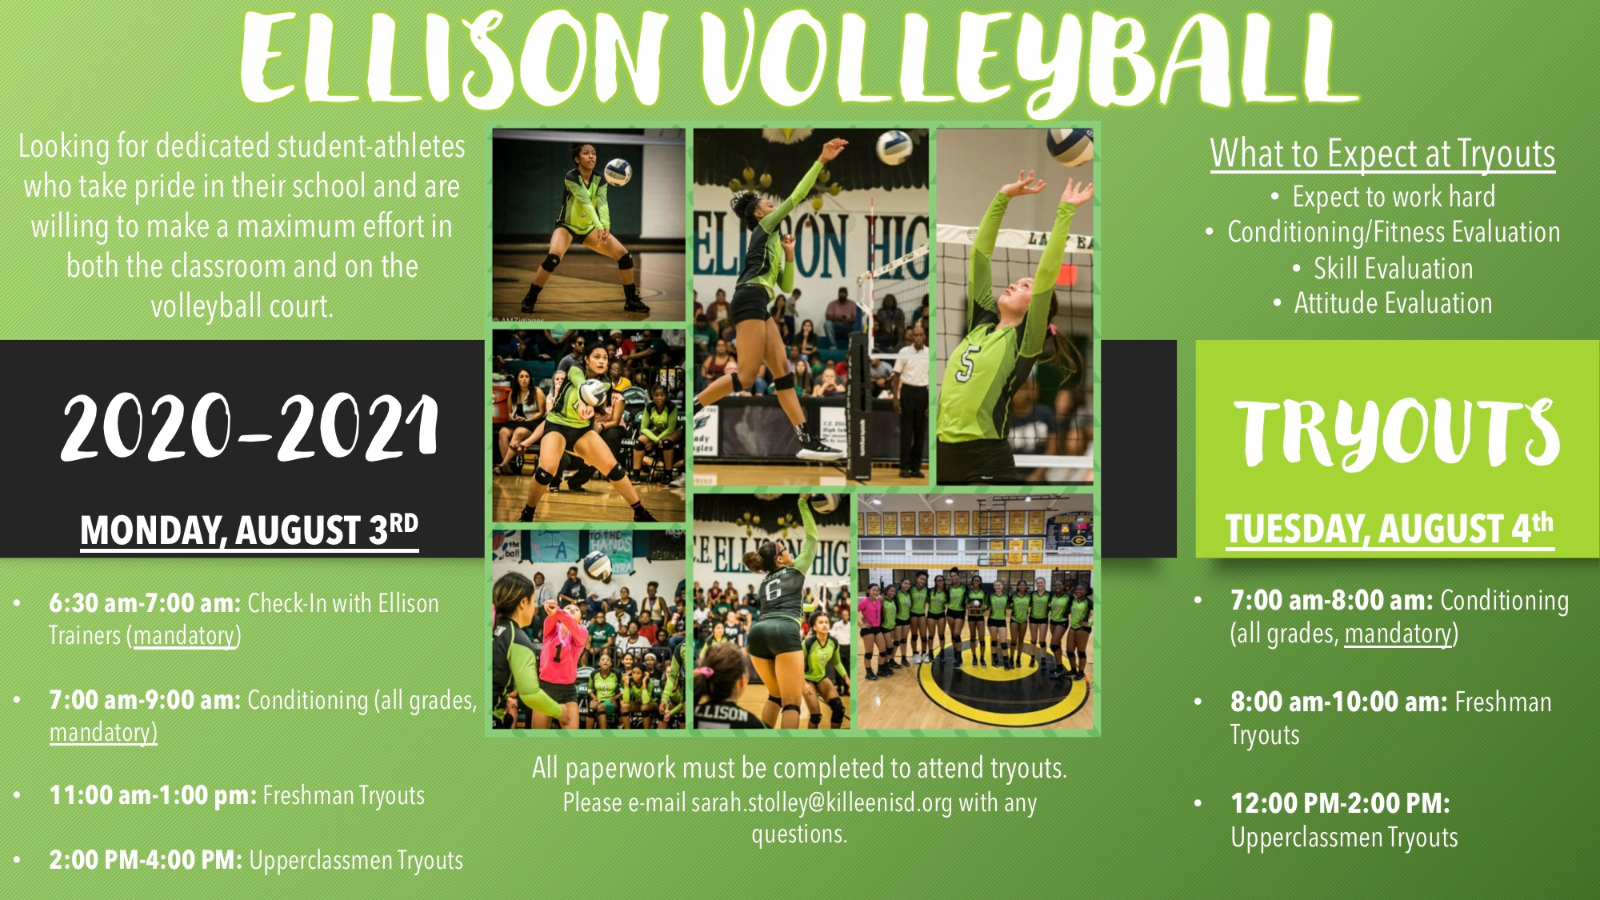 2020-2021 Ellison Volleyball Tryouts